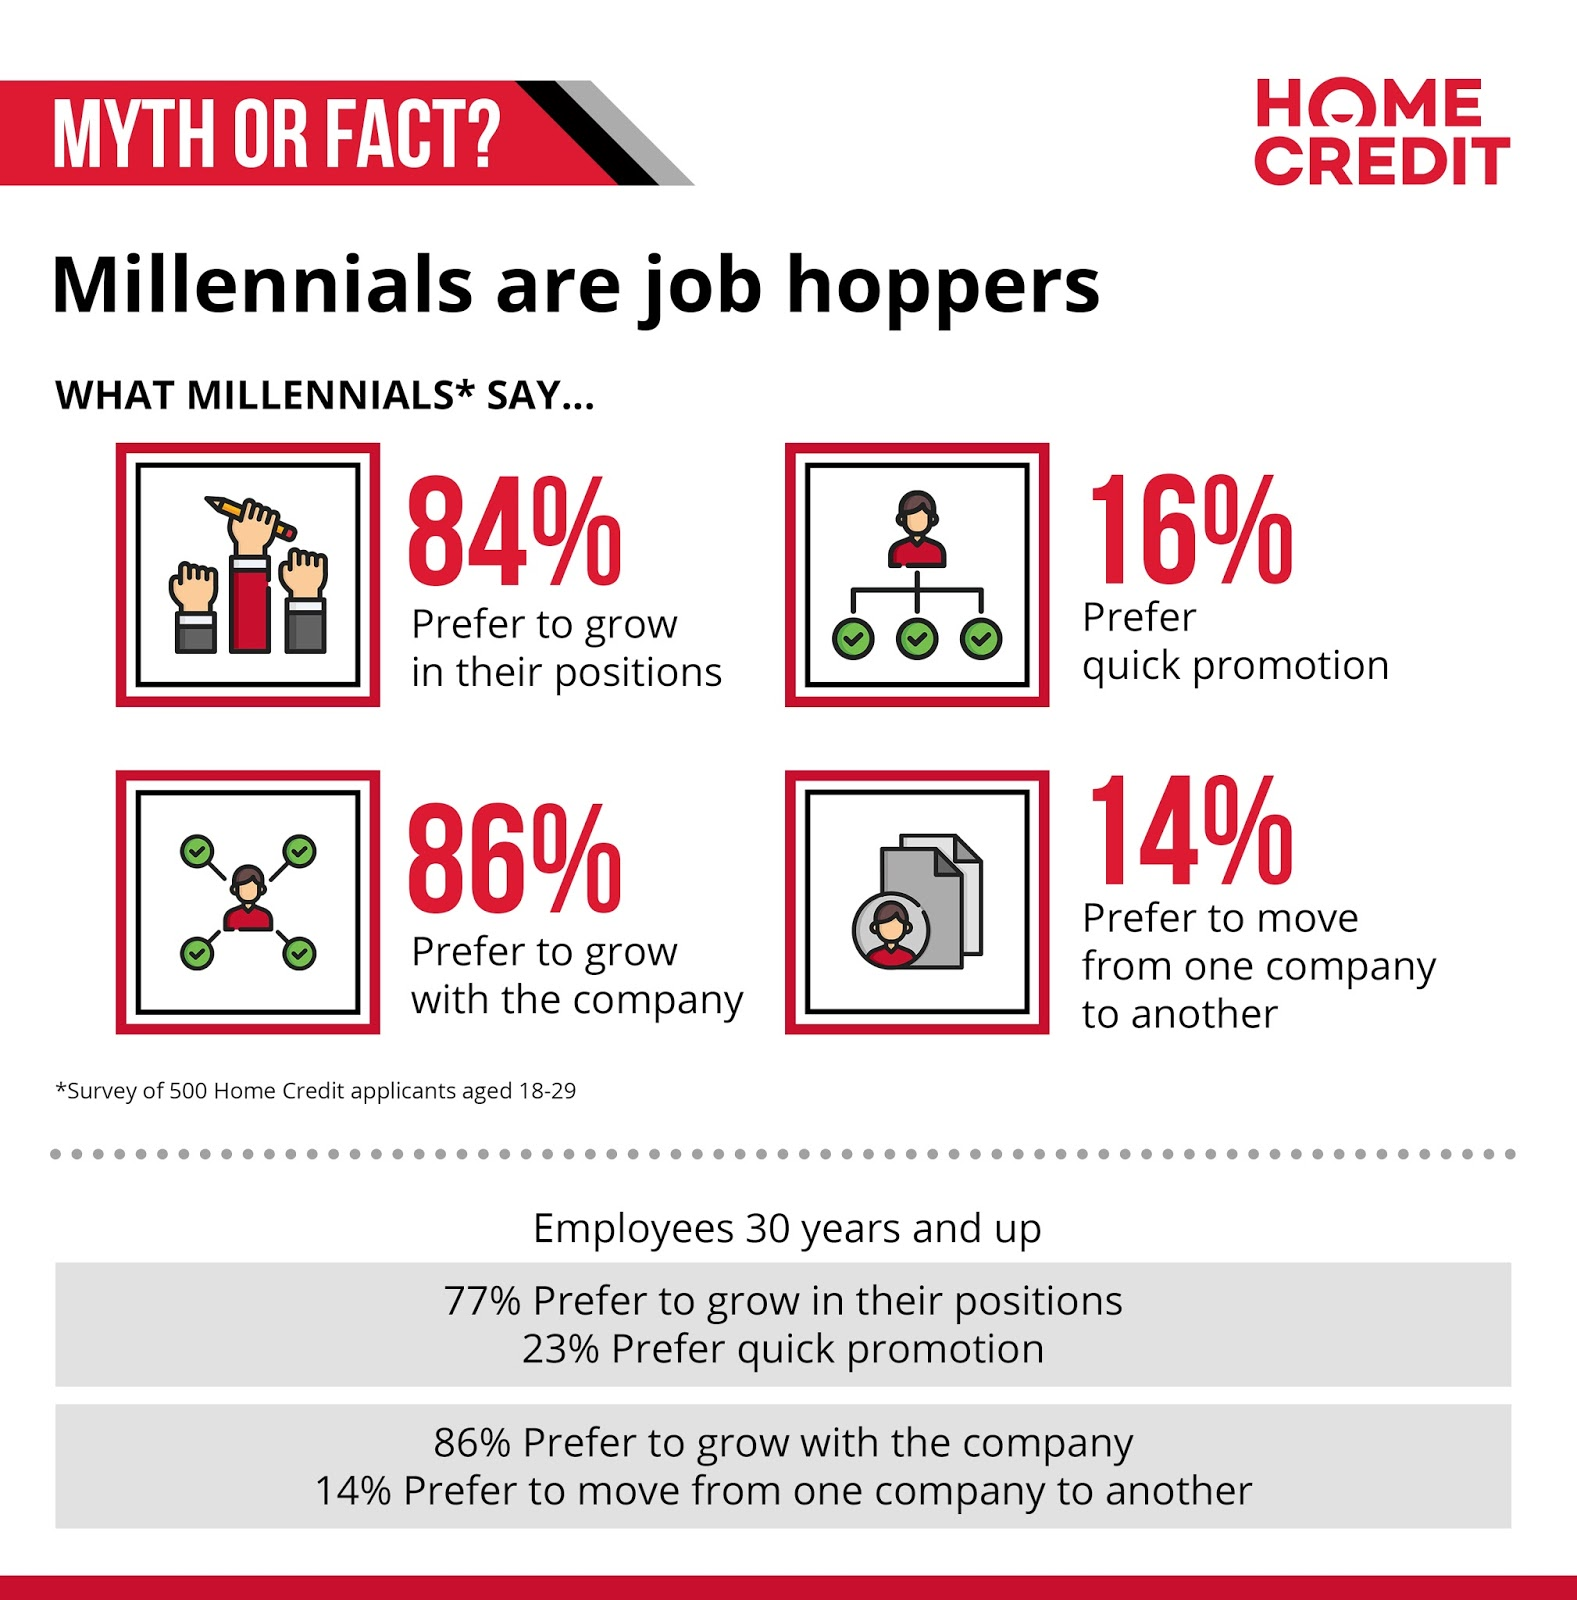 Myth or fact: millennials = job hopping + quick promotion